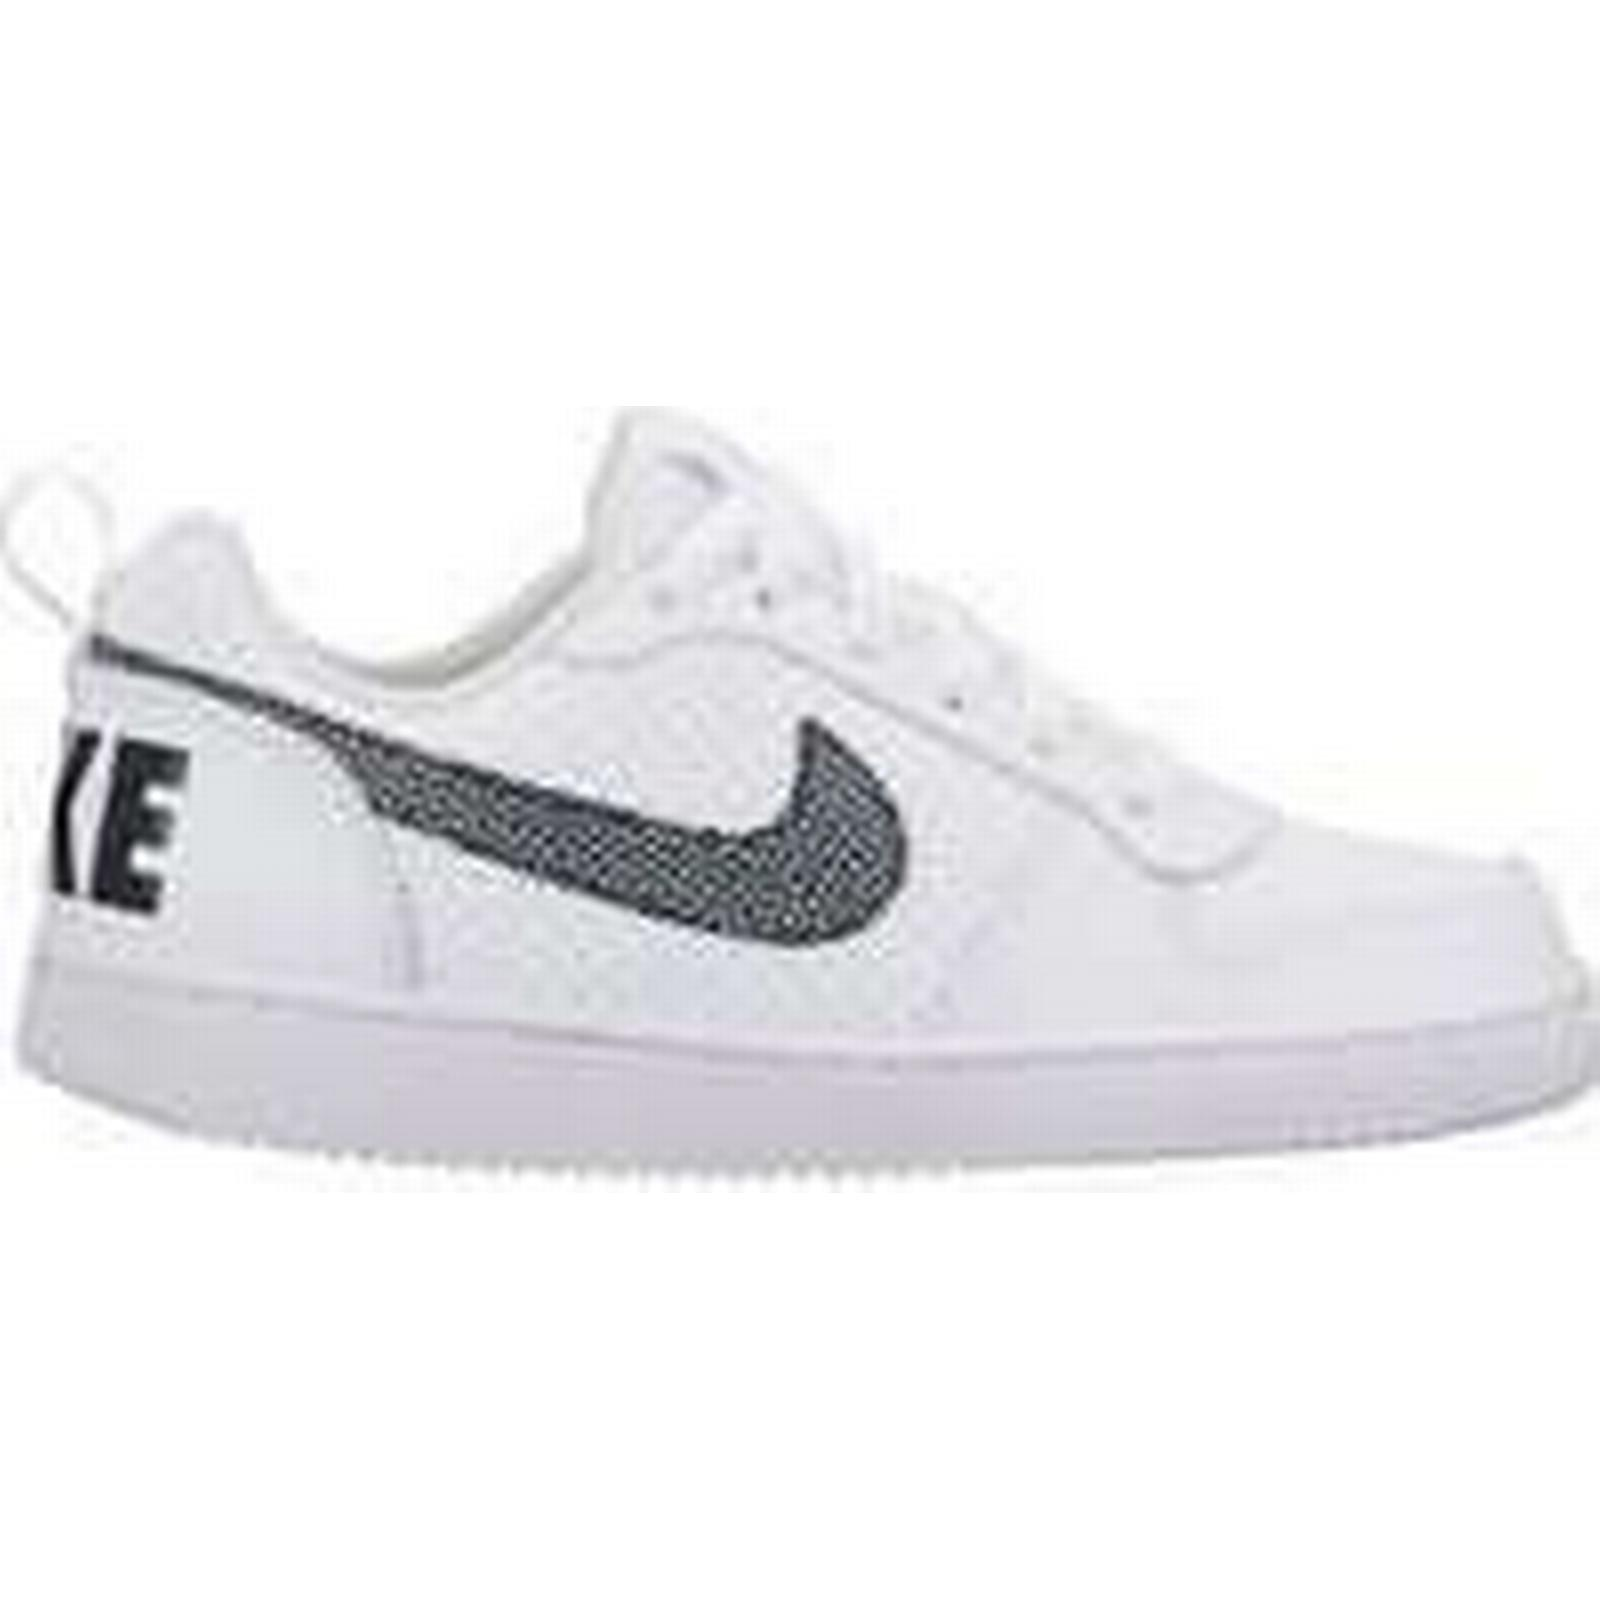 Spartoo.co.uk Nike Boys' Court Borough Low (GS) Shoe (Trainers) 839985 103 women's Shoes (Trainers) Shoe in White 442d77